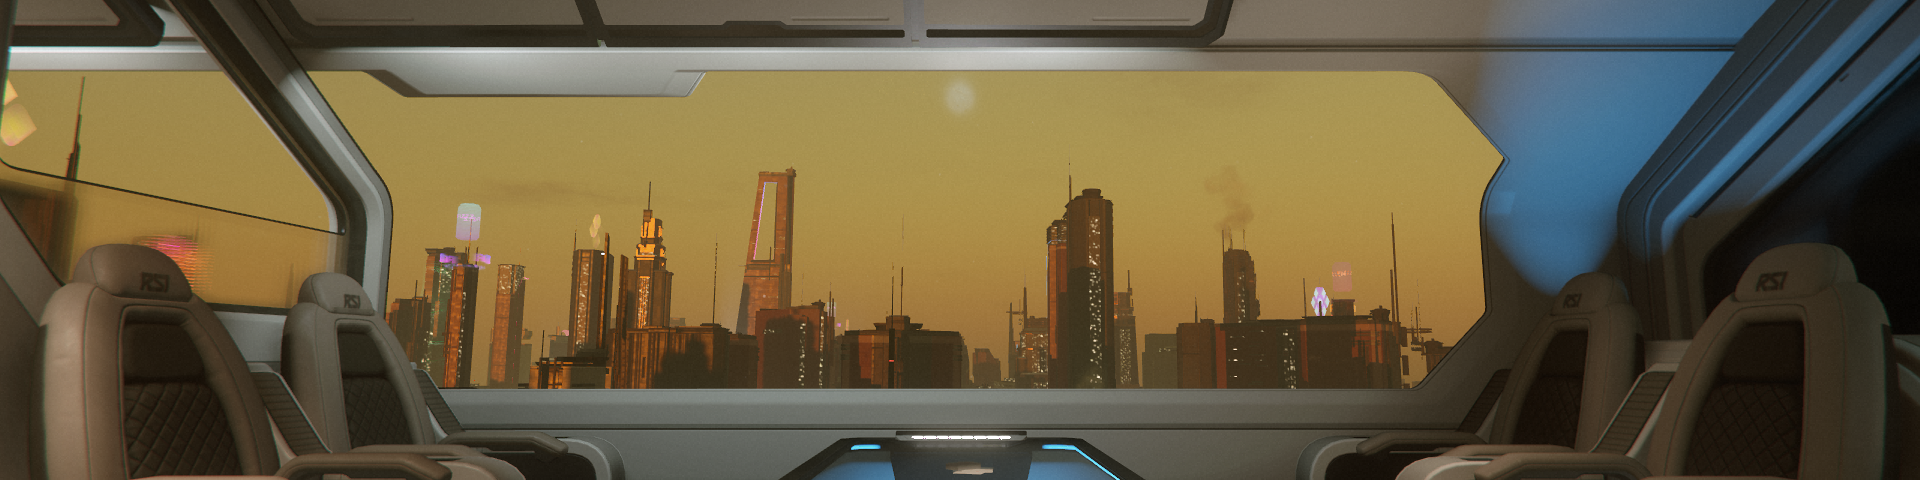 City skyline seen through the window of a space ship landed on a rooftop pad.